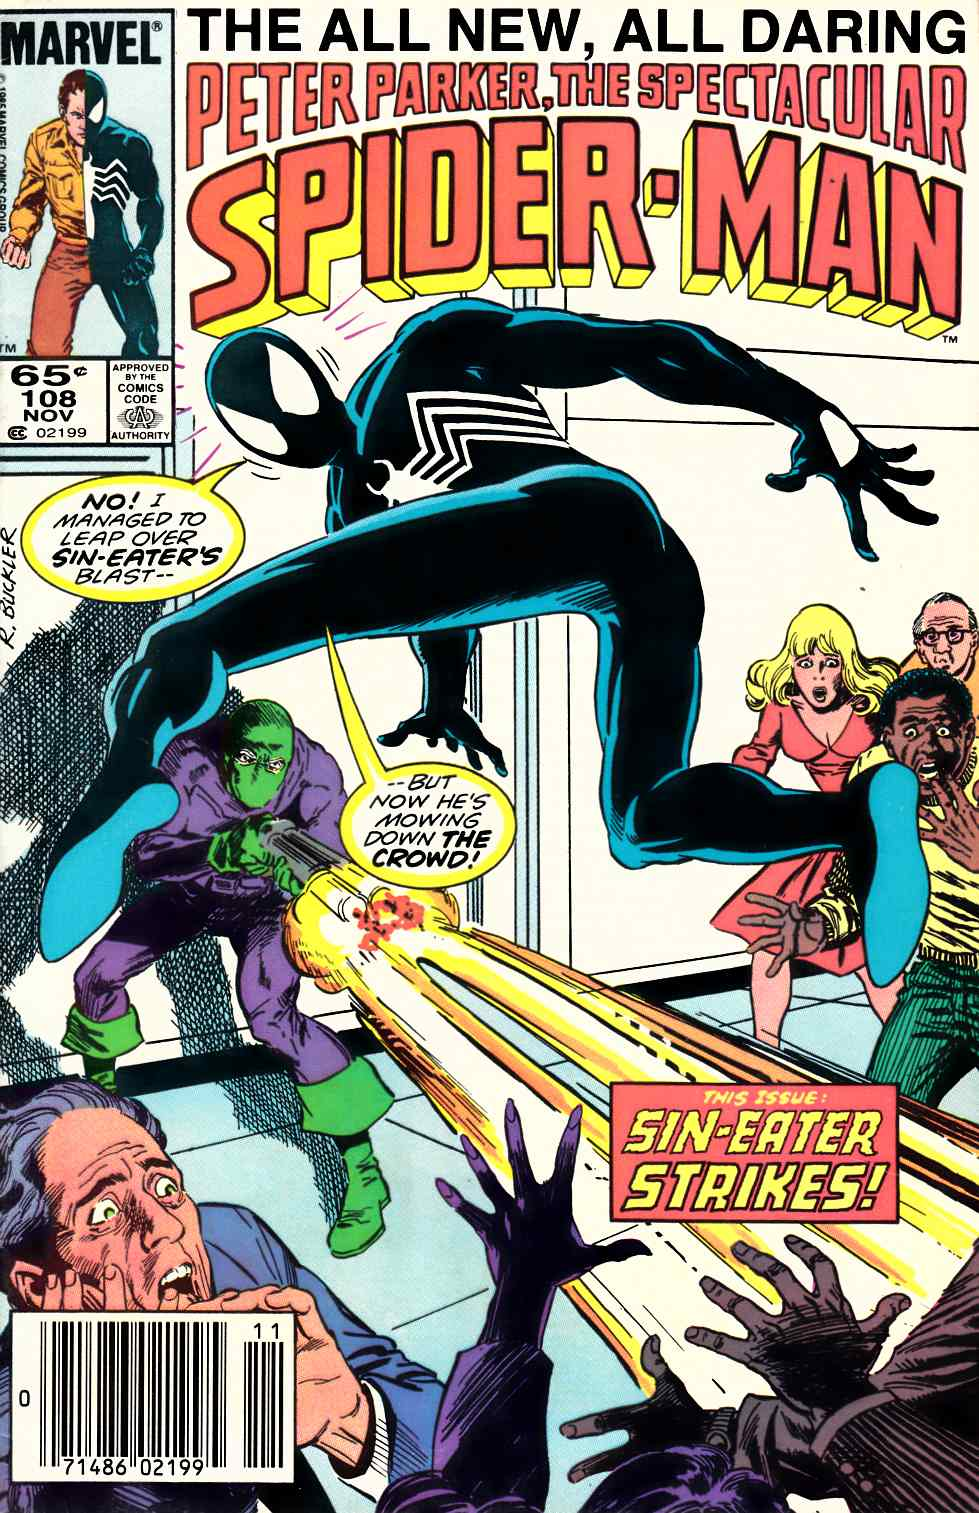 Peter Parker Spectacular Spider-Man #108 Newsstand Edition Fine Plus (6.5) [Marvel Comic] THUMBNAIL